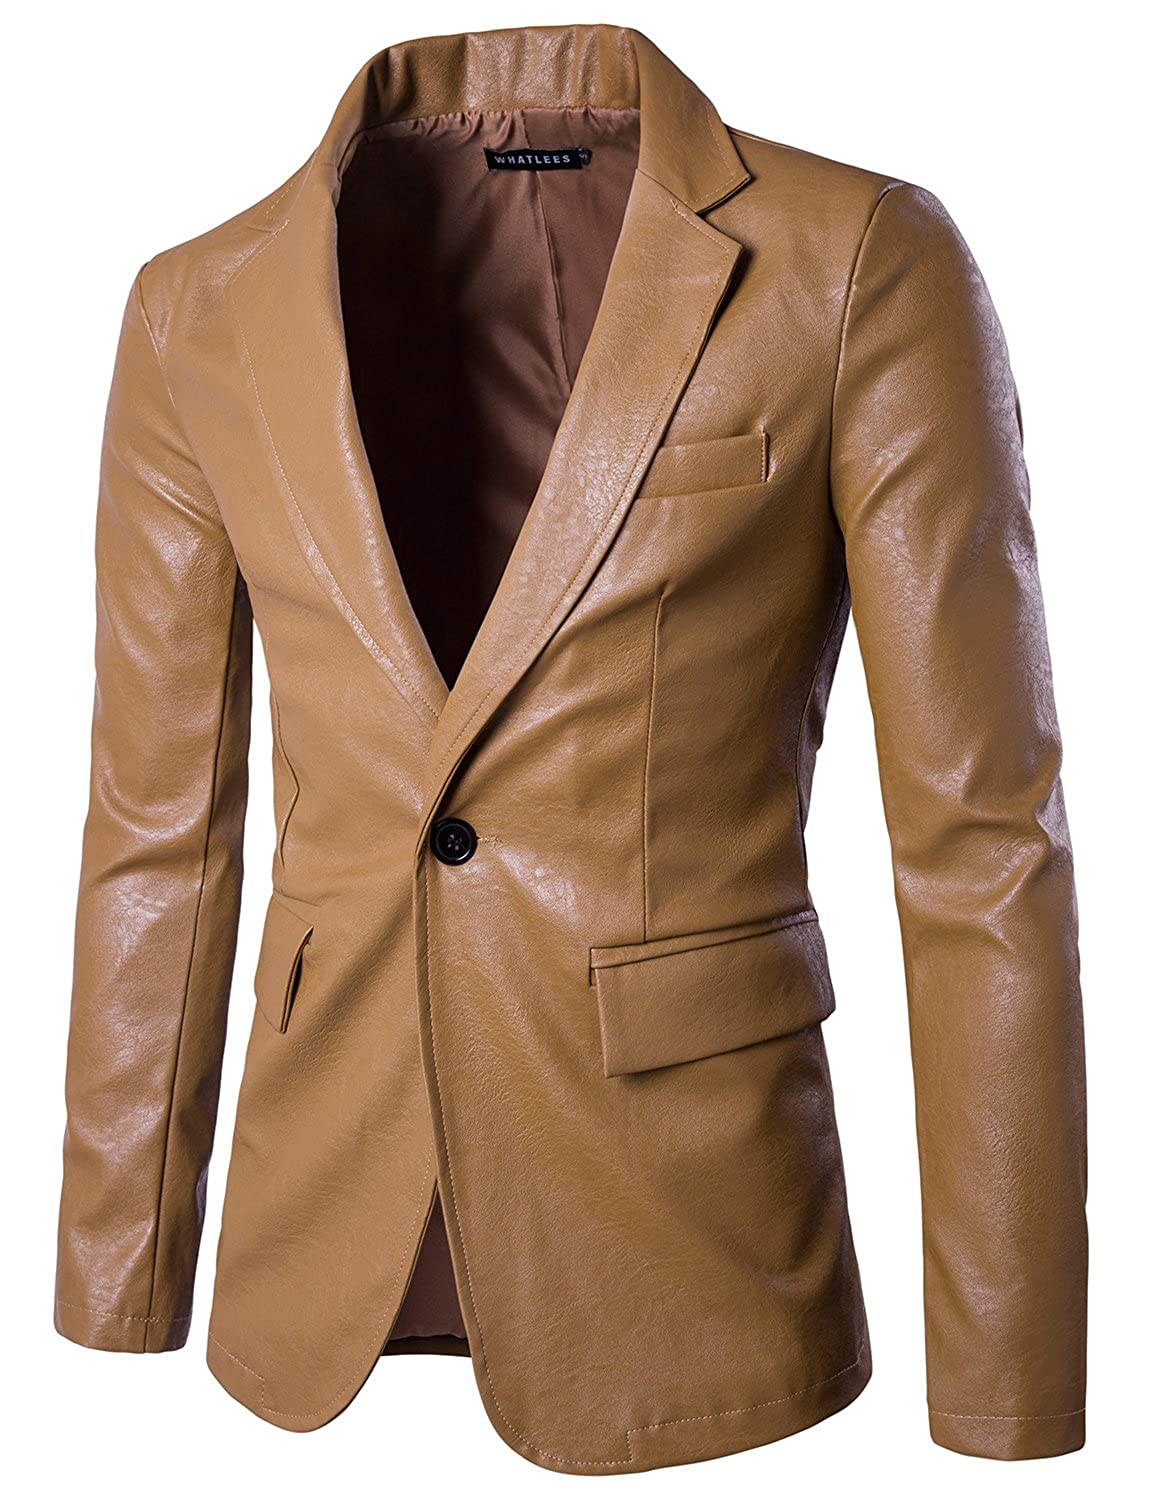 WHATLEES Mens Slim Fit Single Breasted One Button PU Leather Blazer Jacket